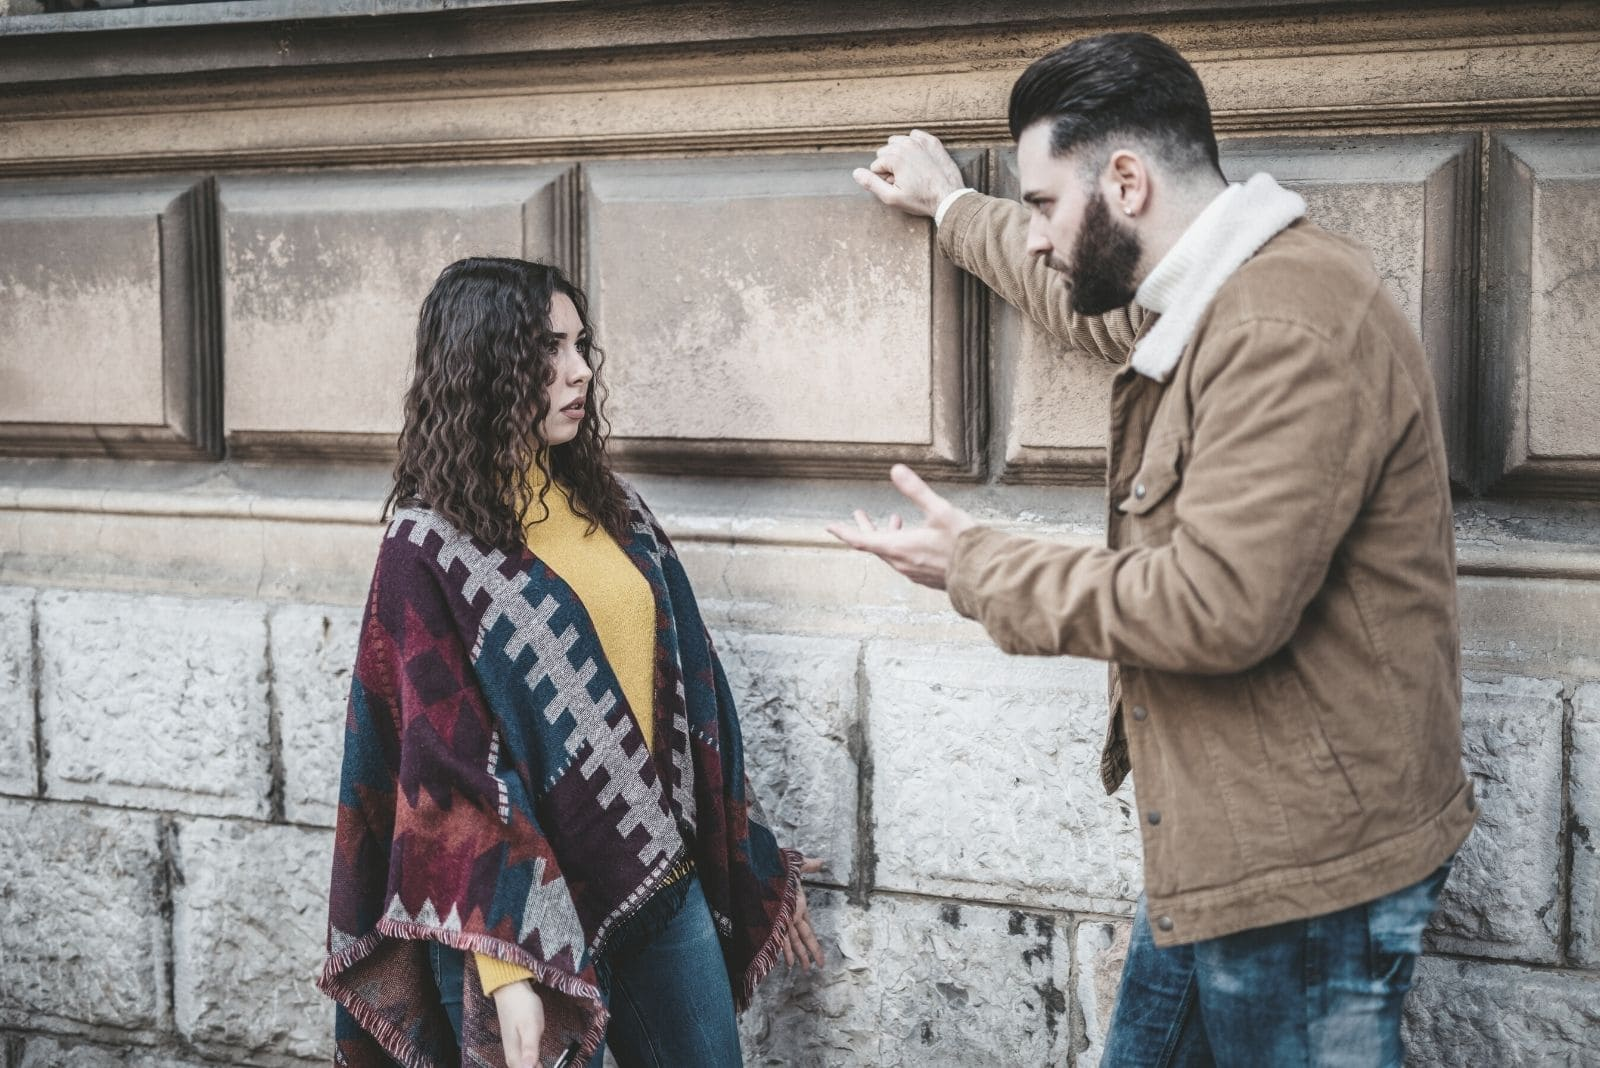 couple arguing outdoors near a large brick wall in the street